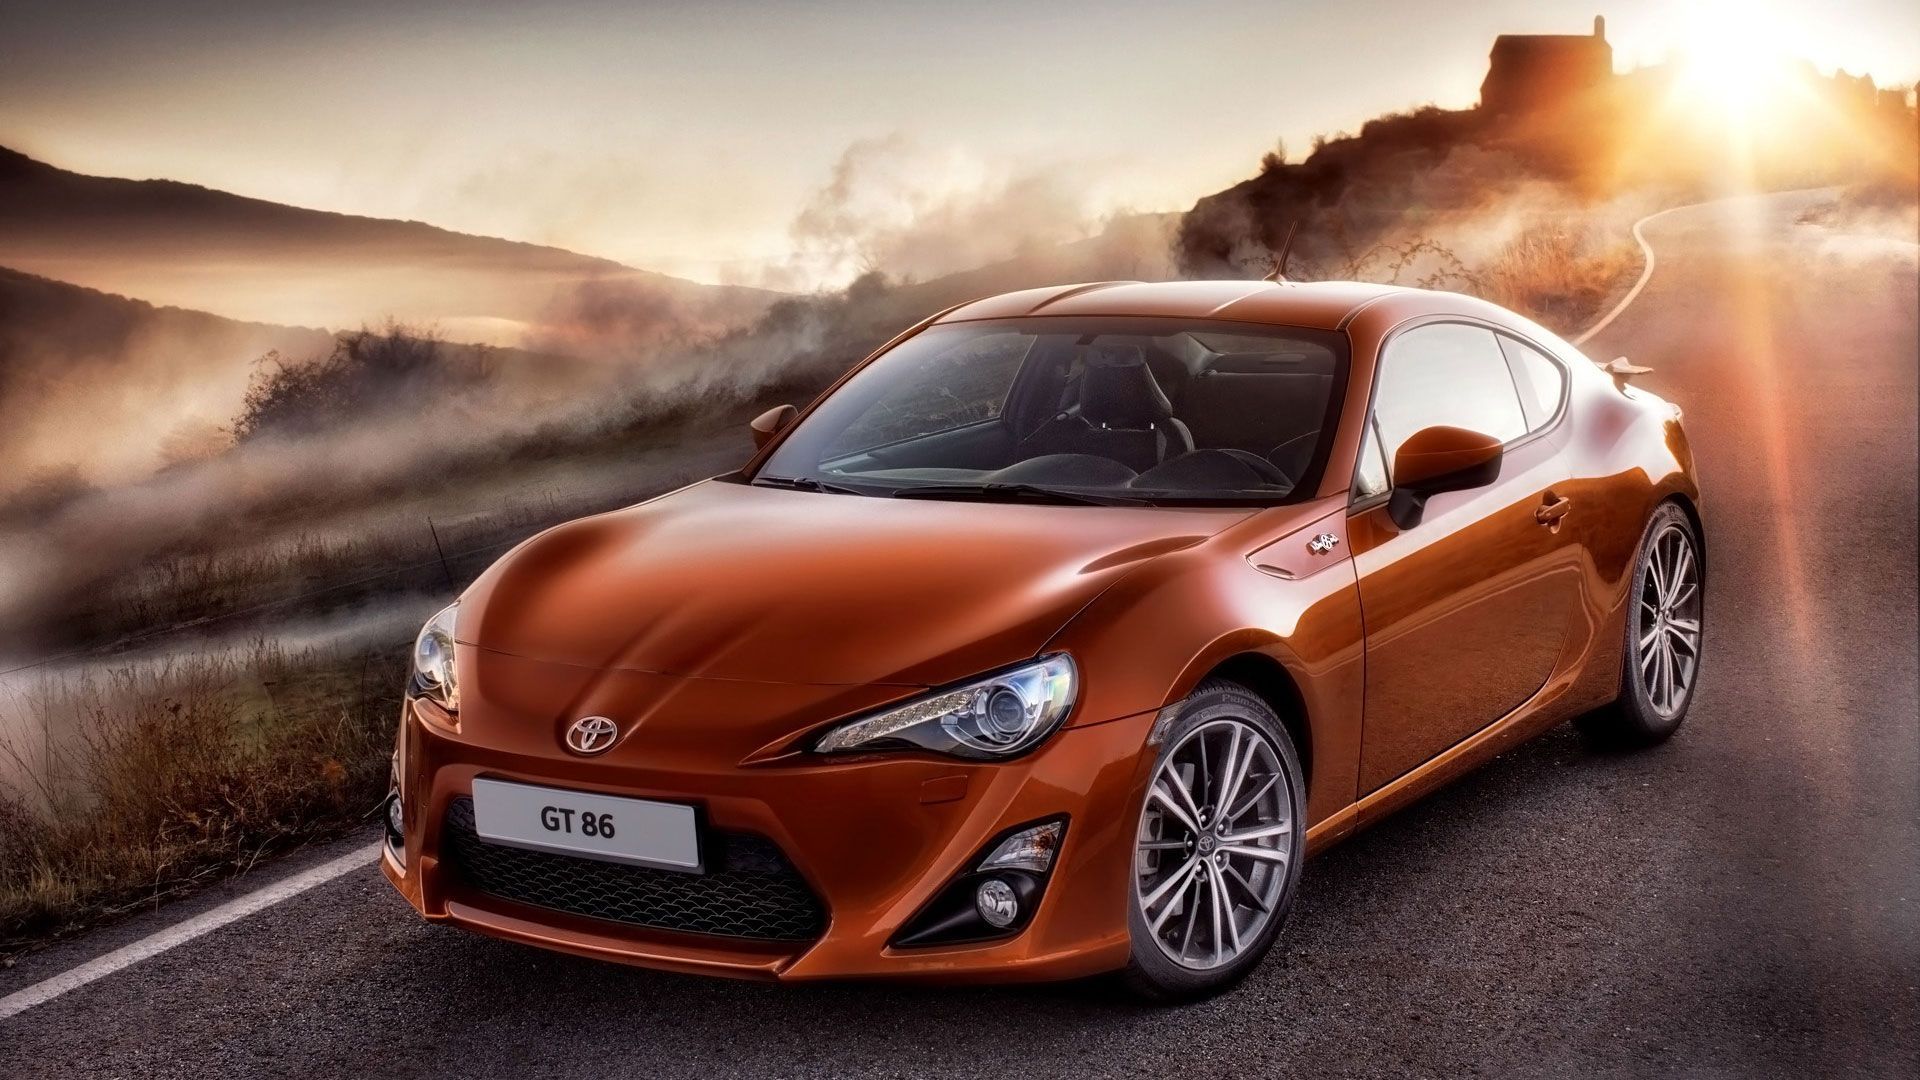 New Toyota Gt 68 Wallpaper 7 2012 86 Review Toyota Gt86 Toyota 86 Toyota Cars